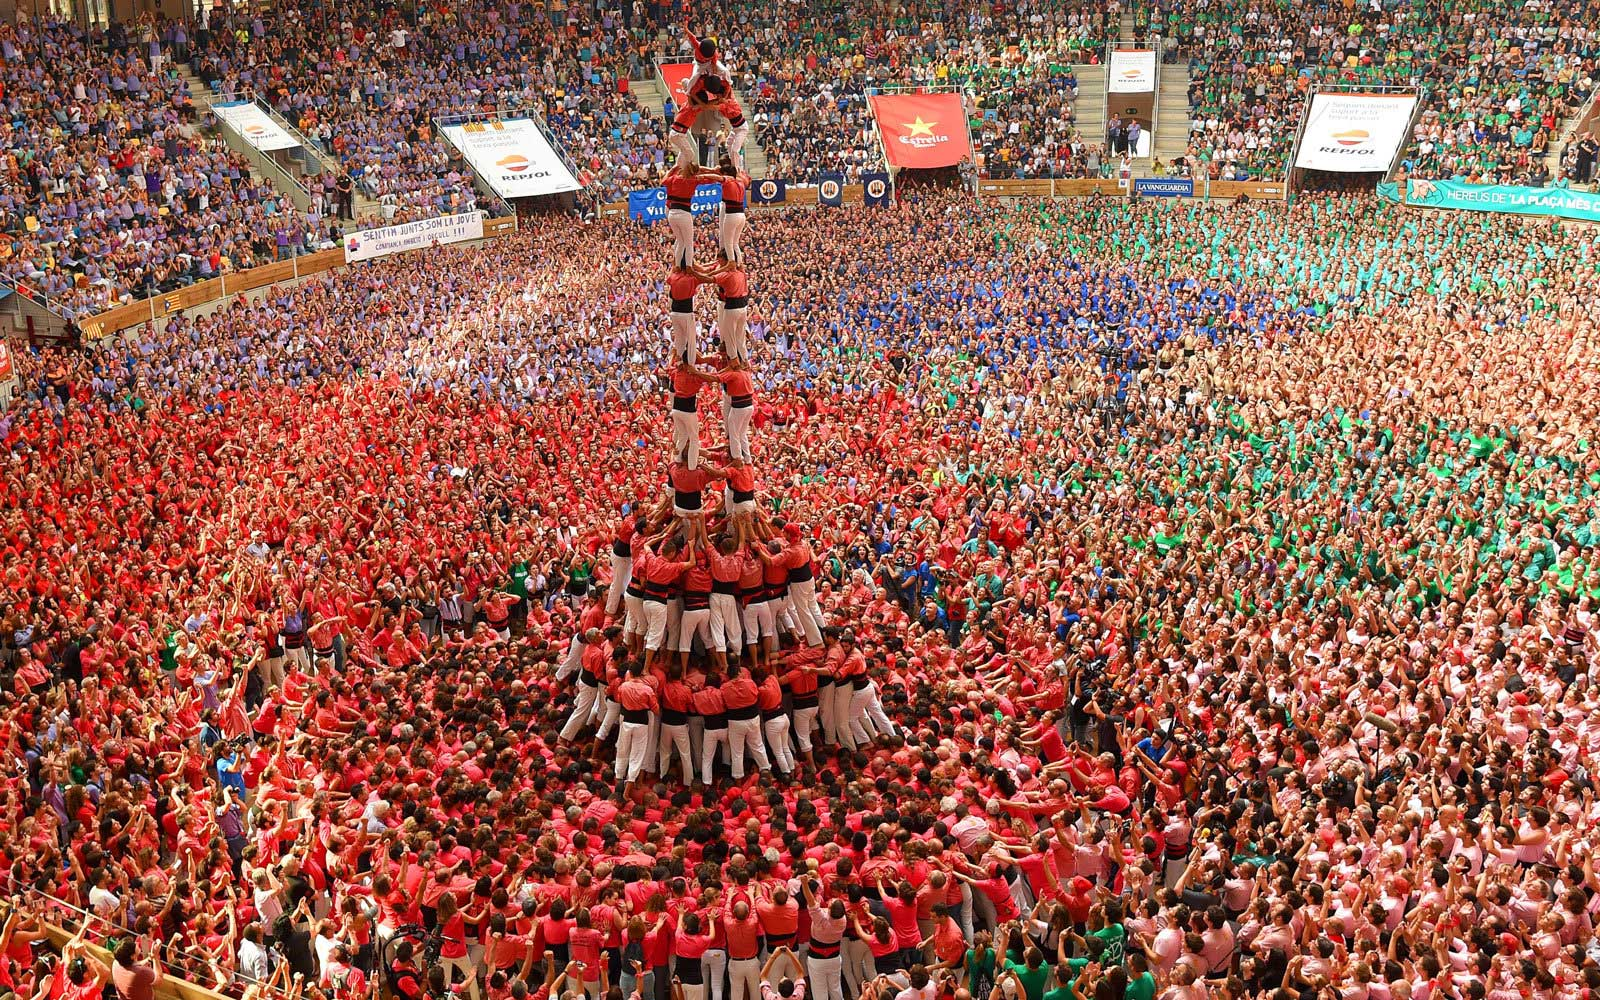 See Vertigo-inducing Human Towers in Catalonia, Spain